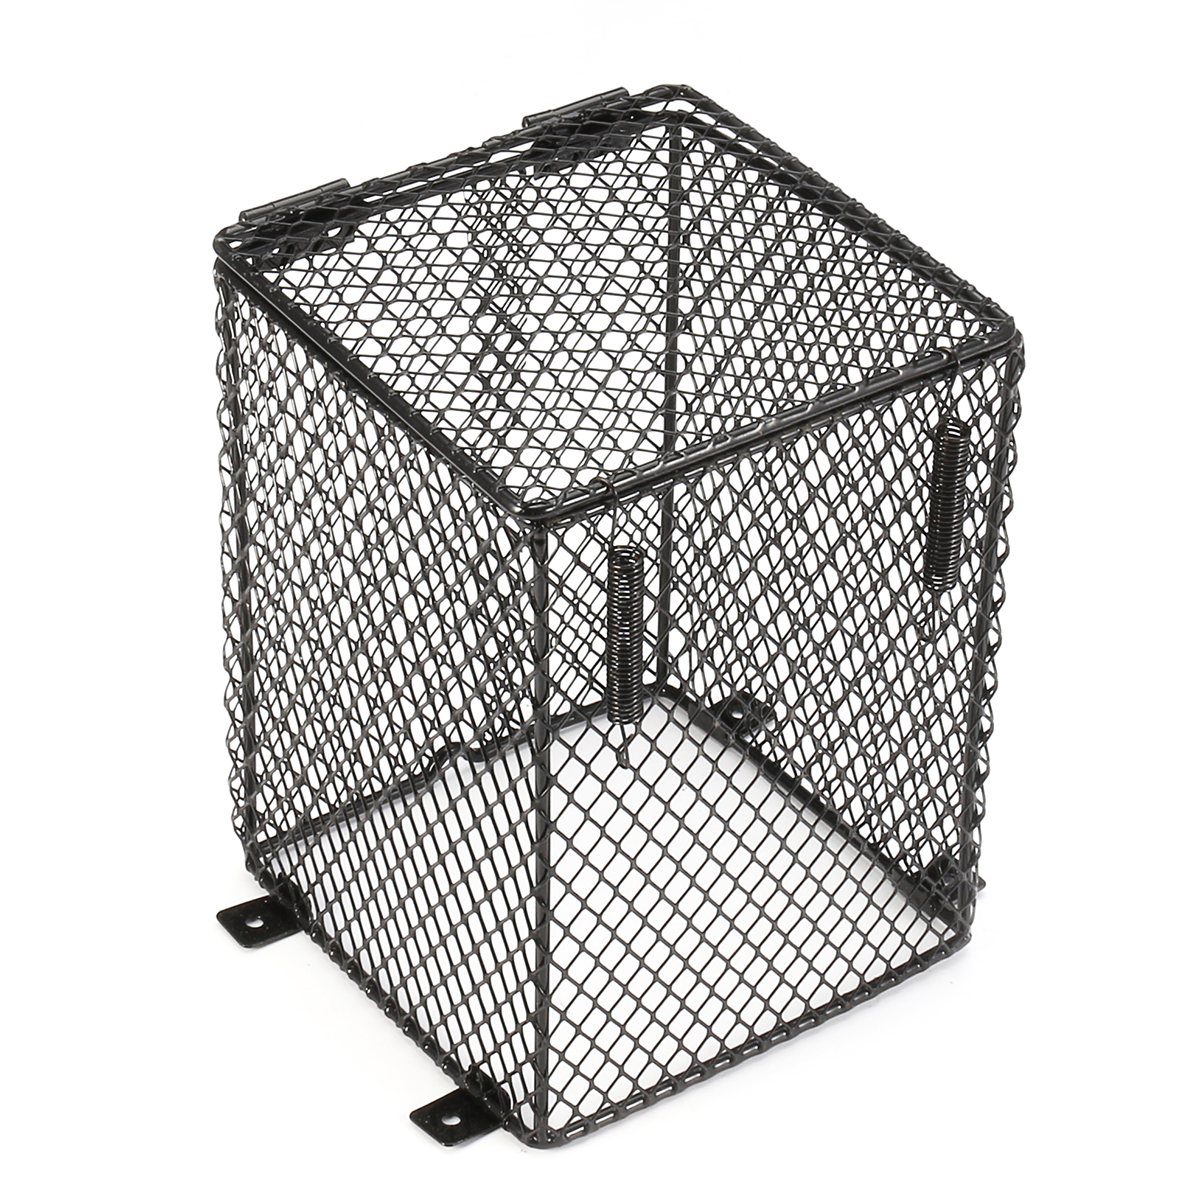 Other Gadgets Reptile Basking Lamp Guard Mesh Cage Light